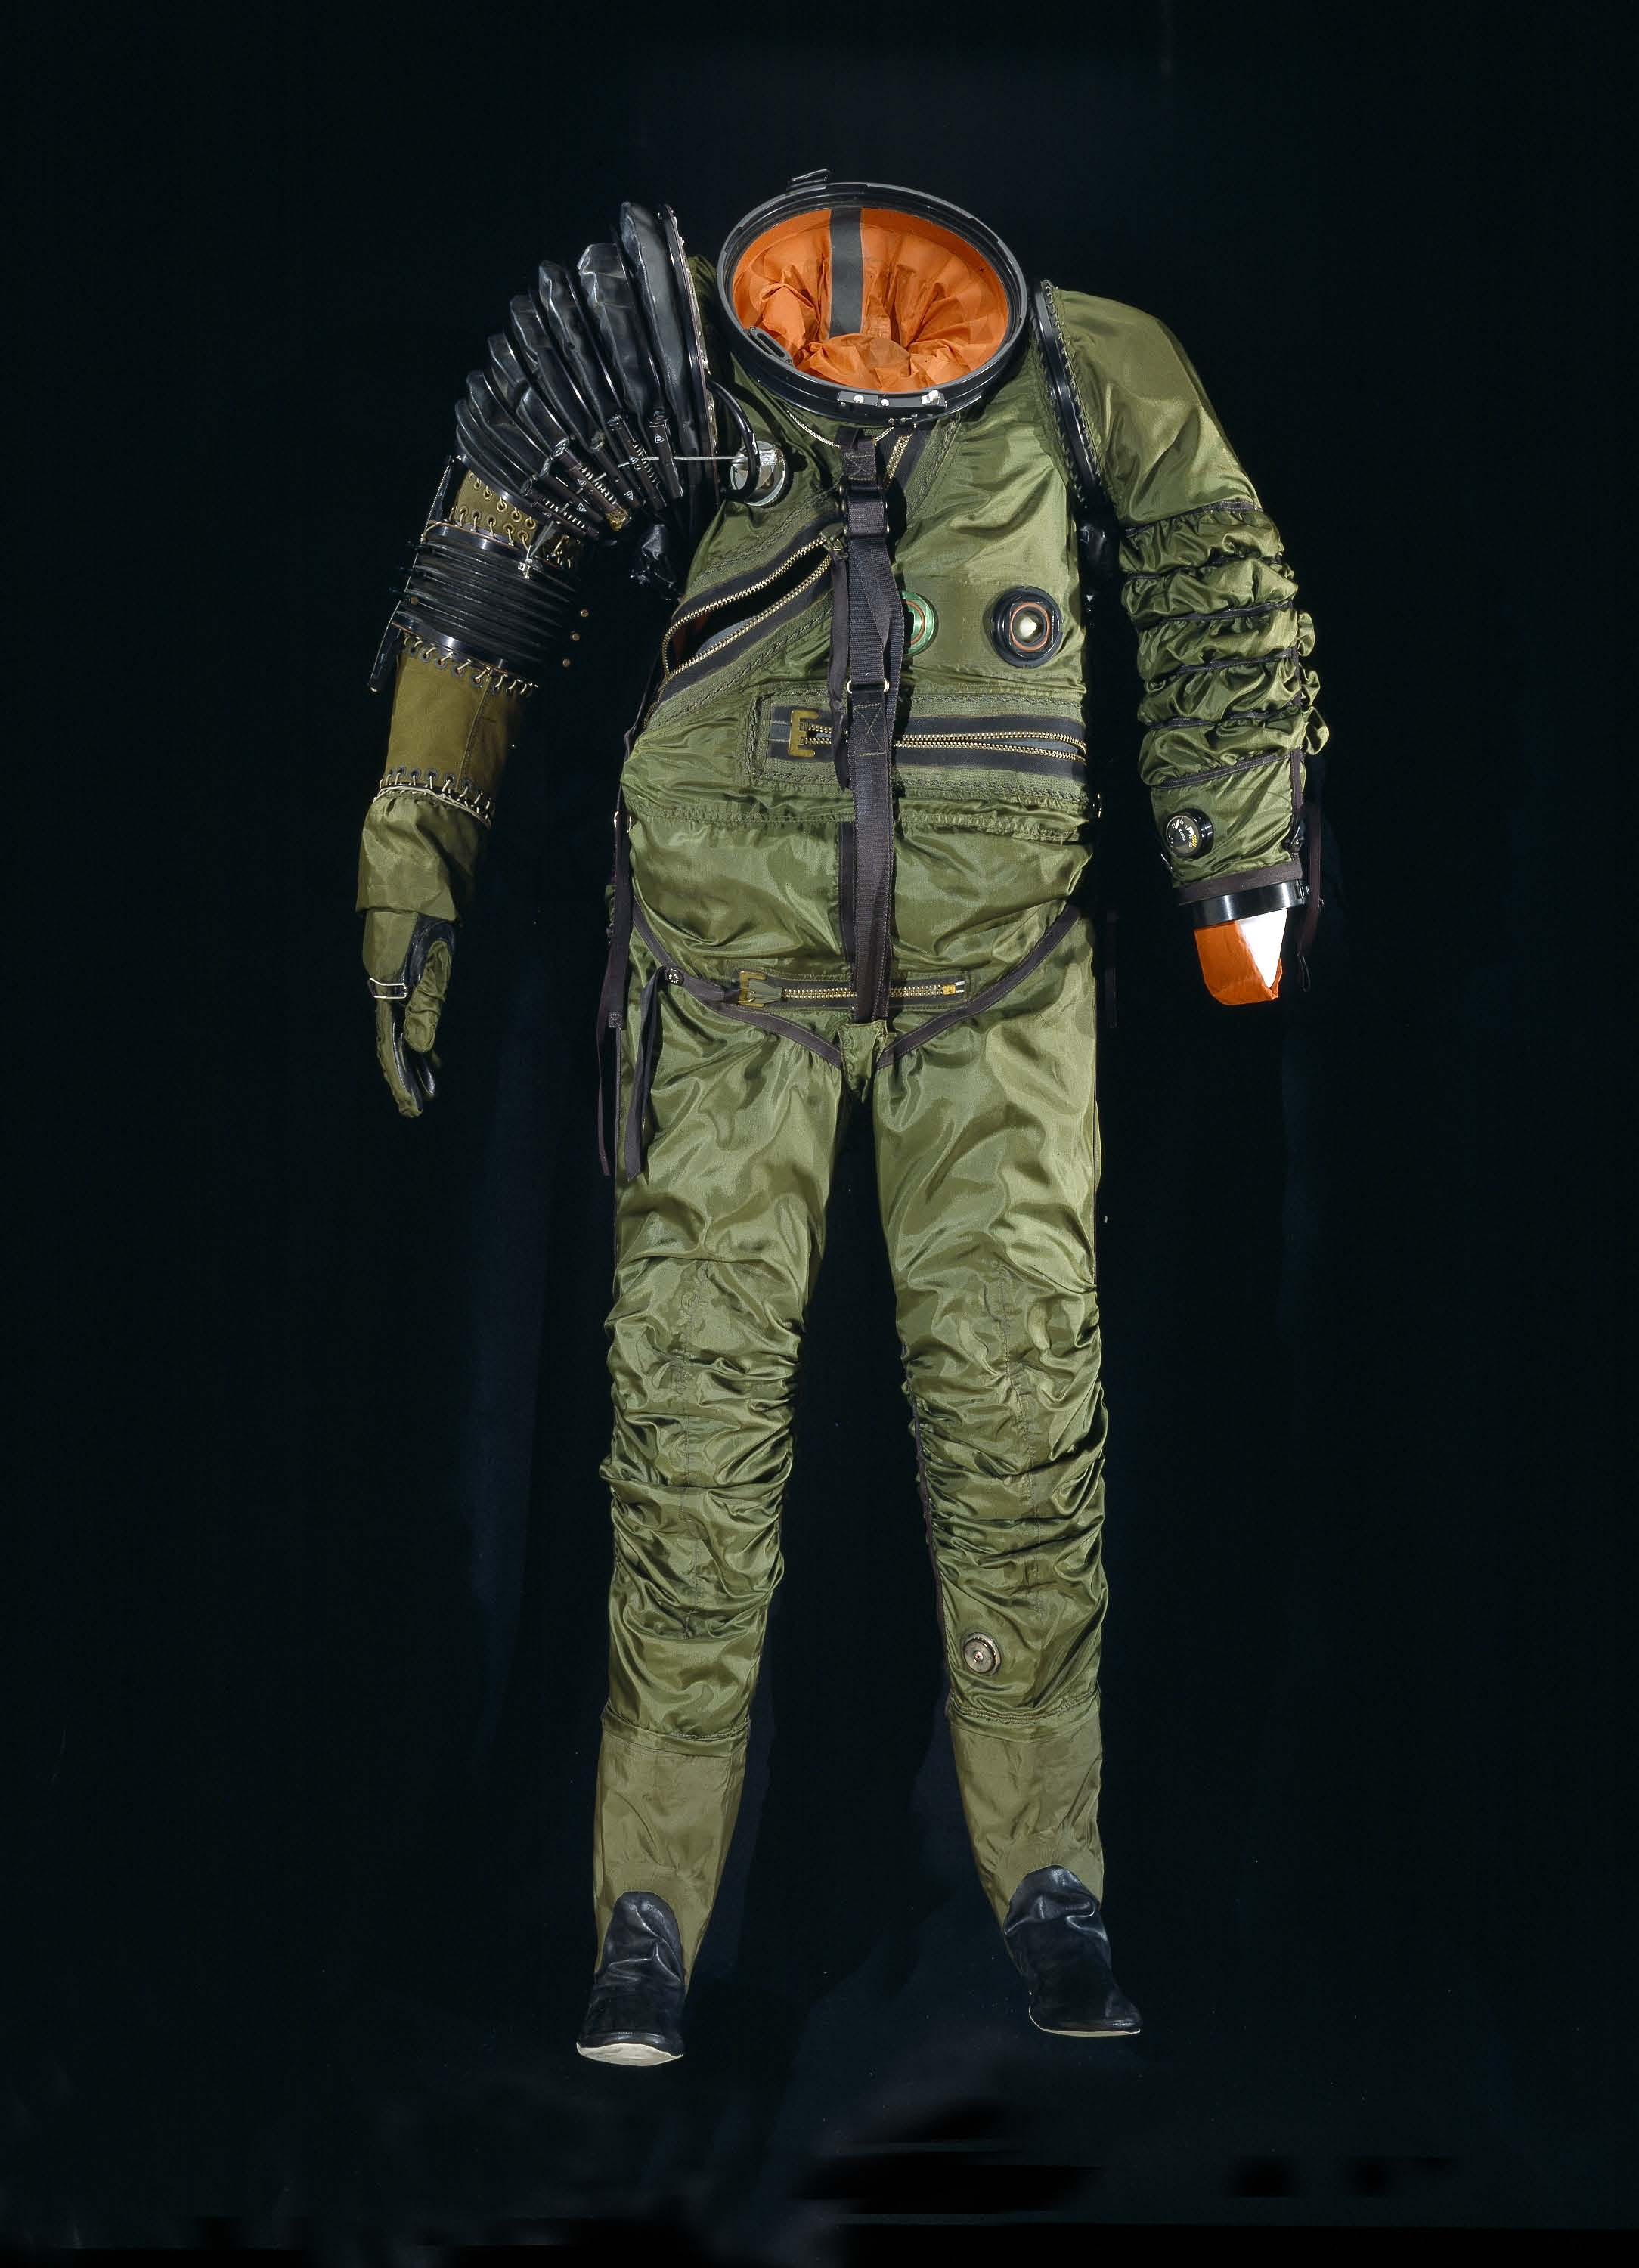 1950 S Astronaut Suit - Pics about space